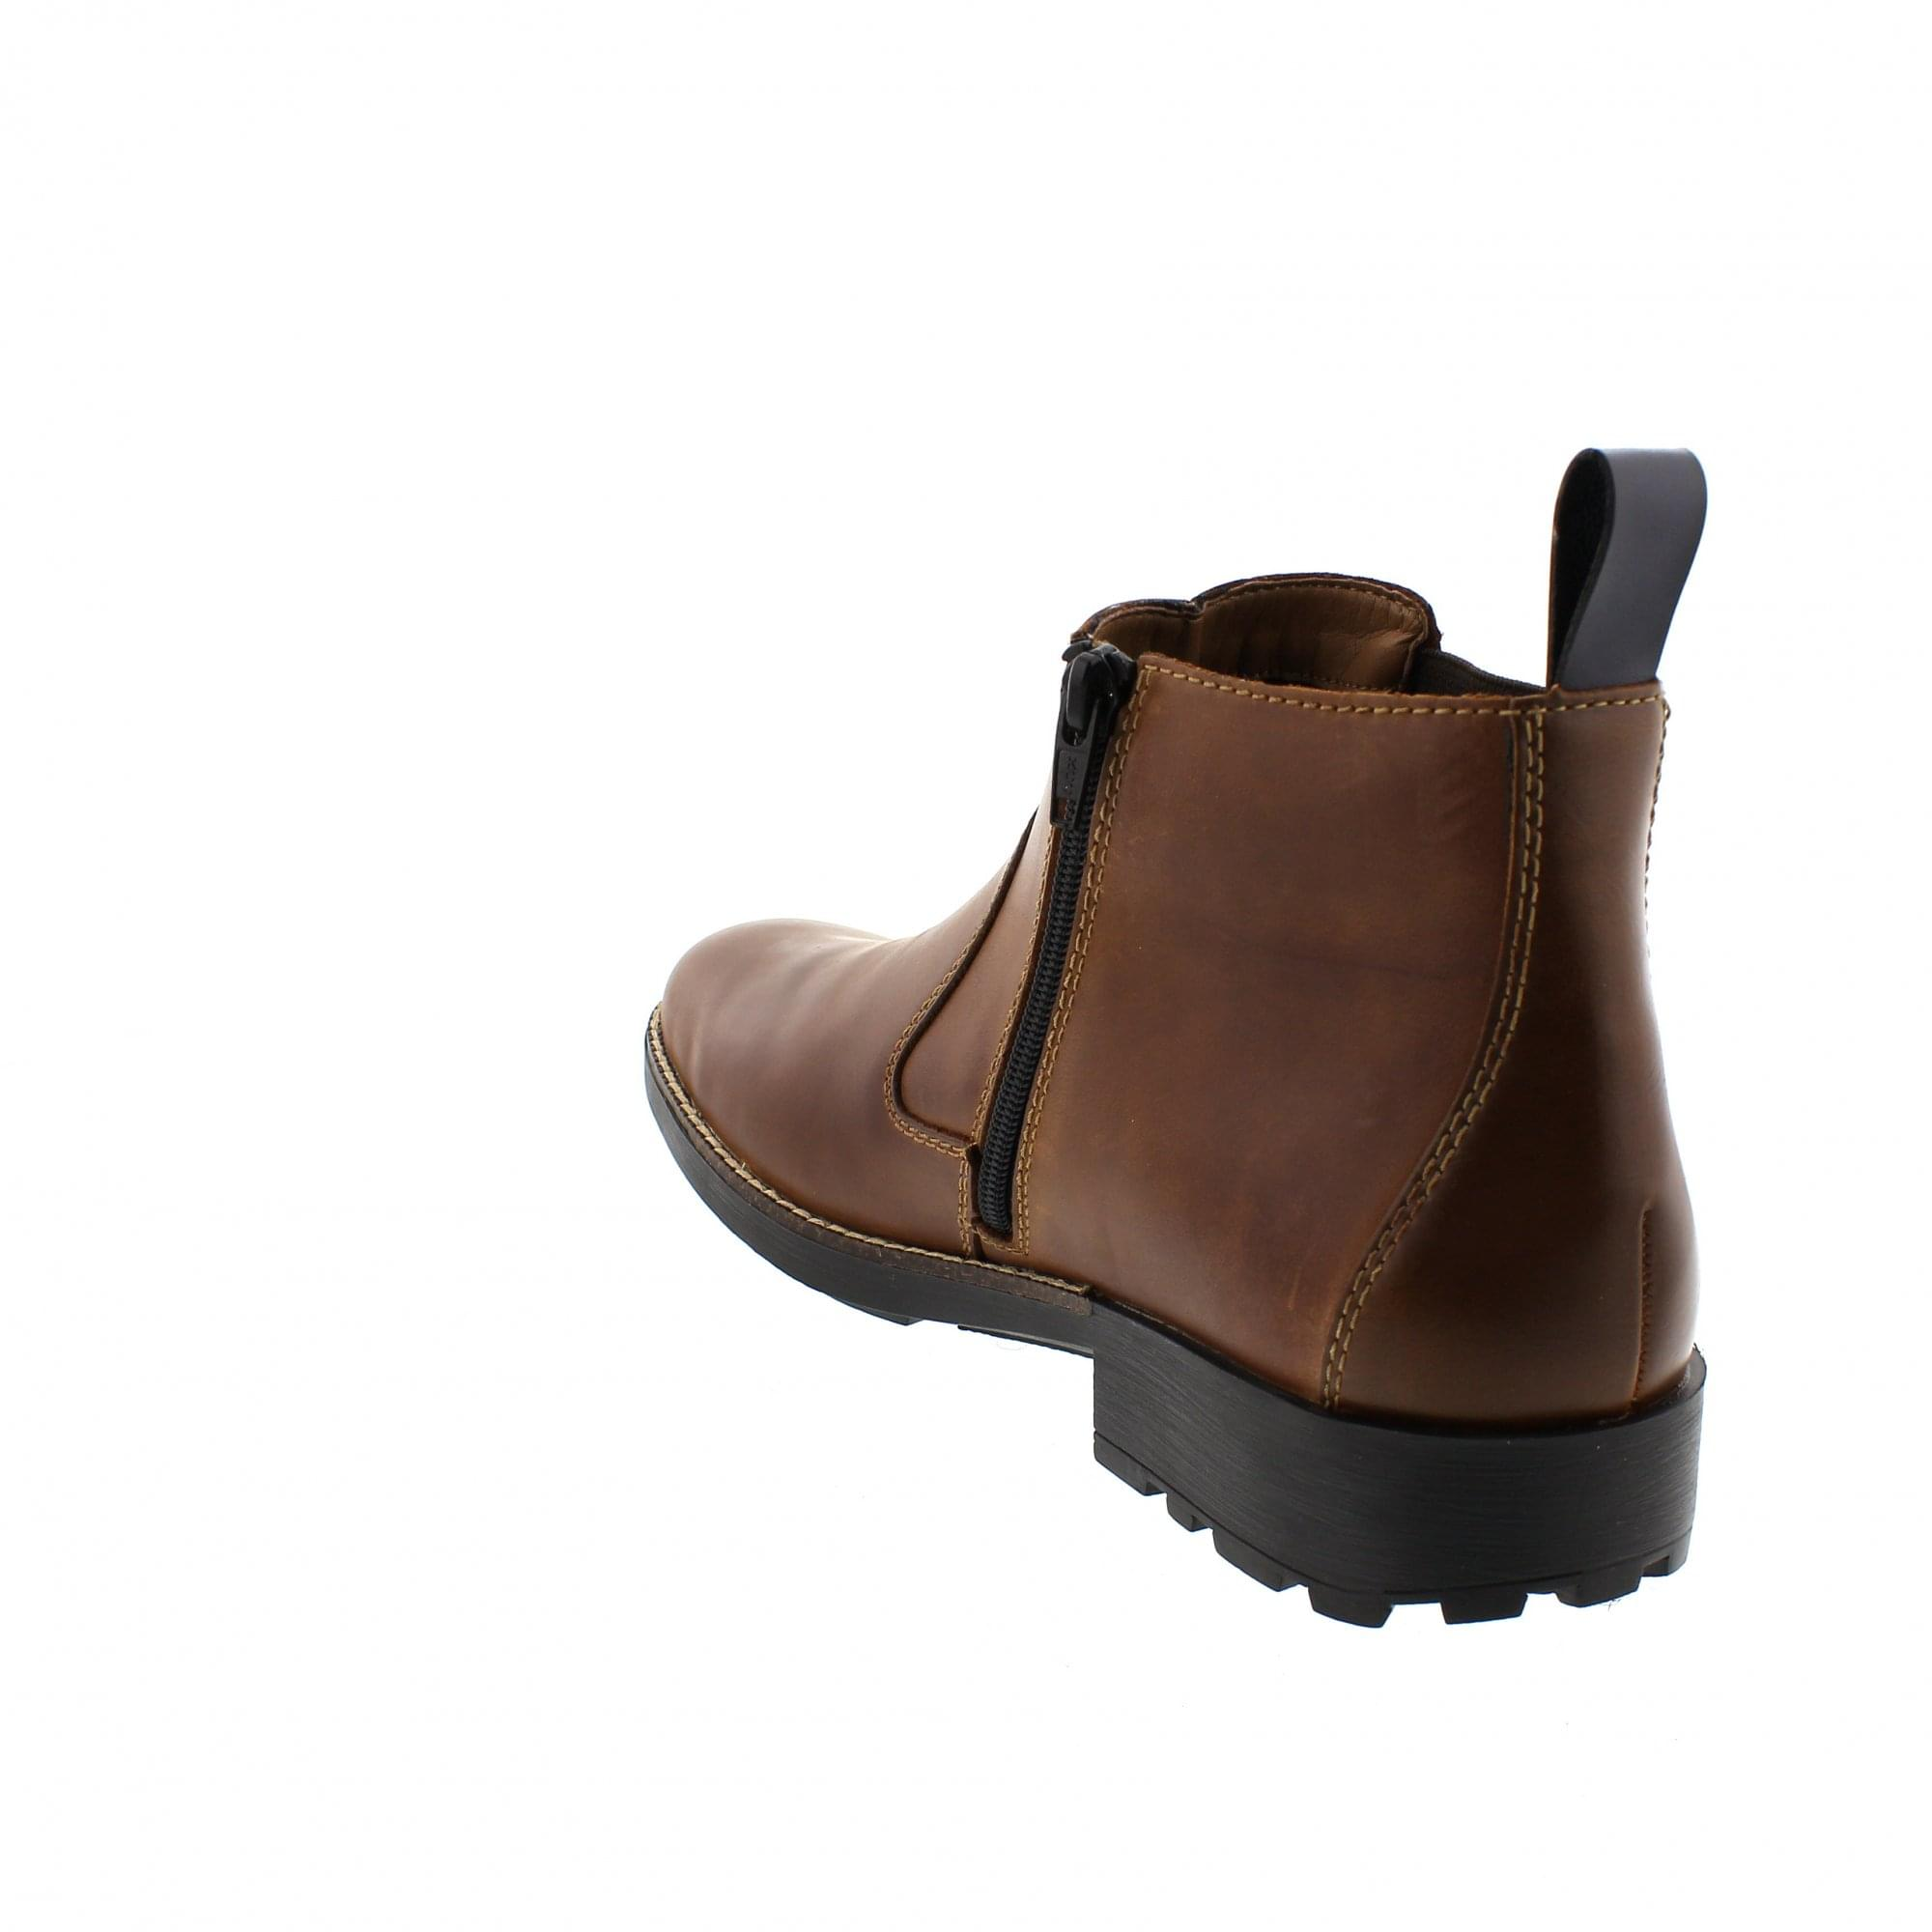 Rieker 36062-25 Mens Leather Warm Side Zip Casual Ankle Chelsea Boots Brown